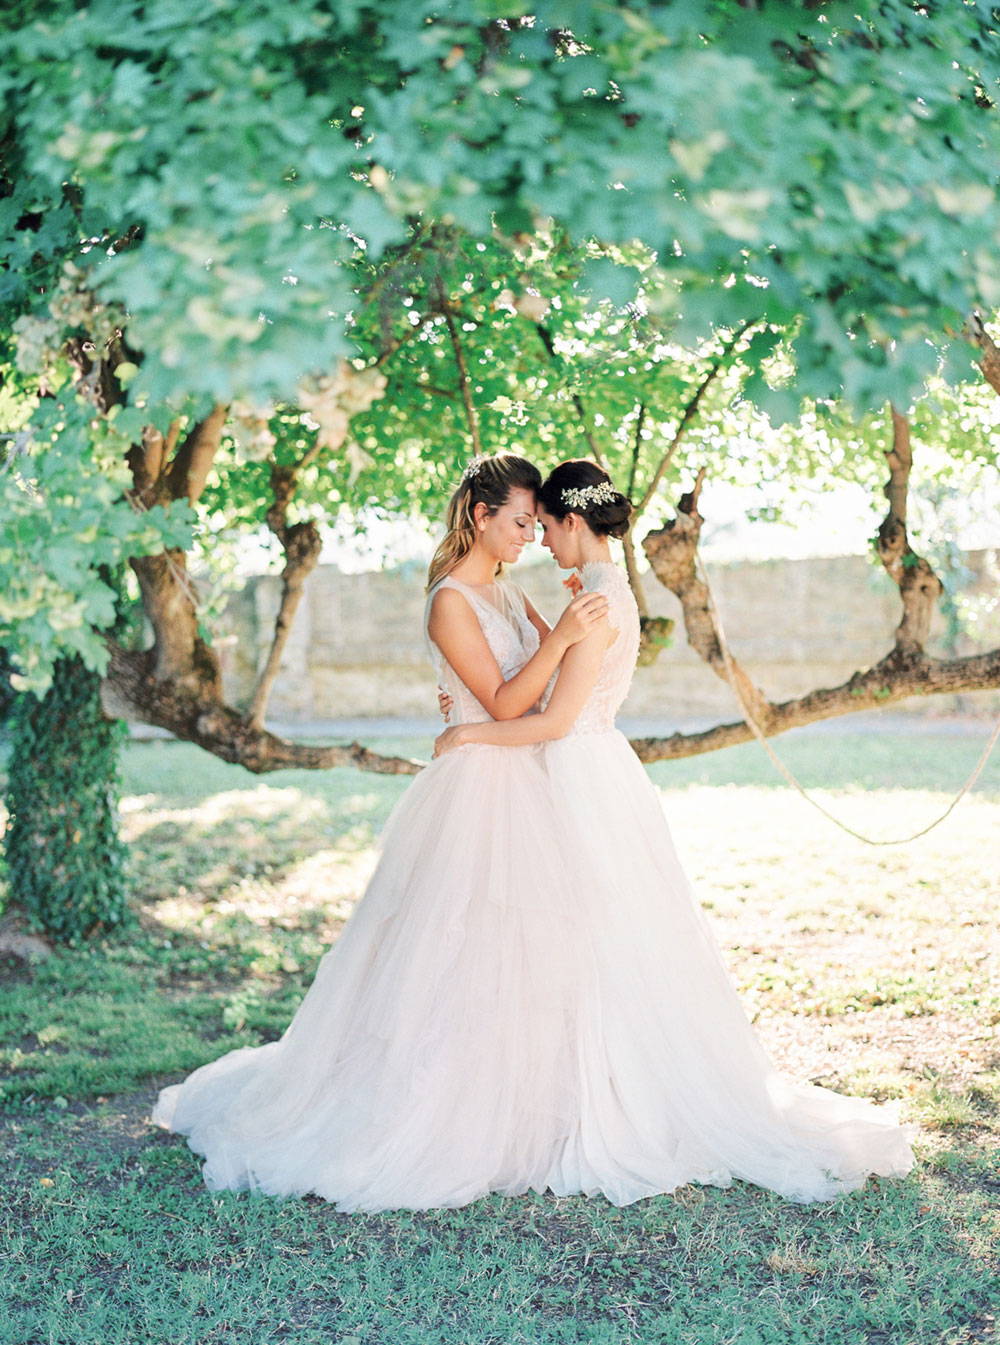 Linari-Tuscany-Elopement-Courtney-Michaela-289